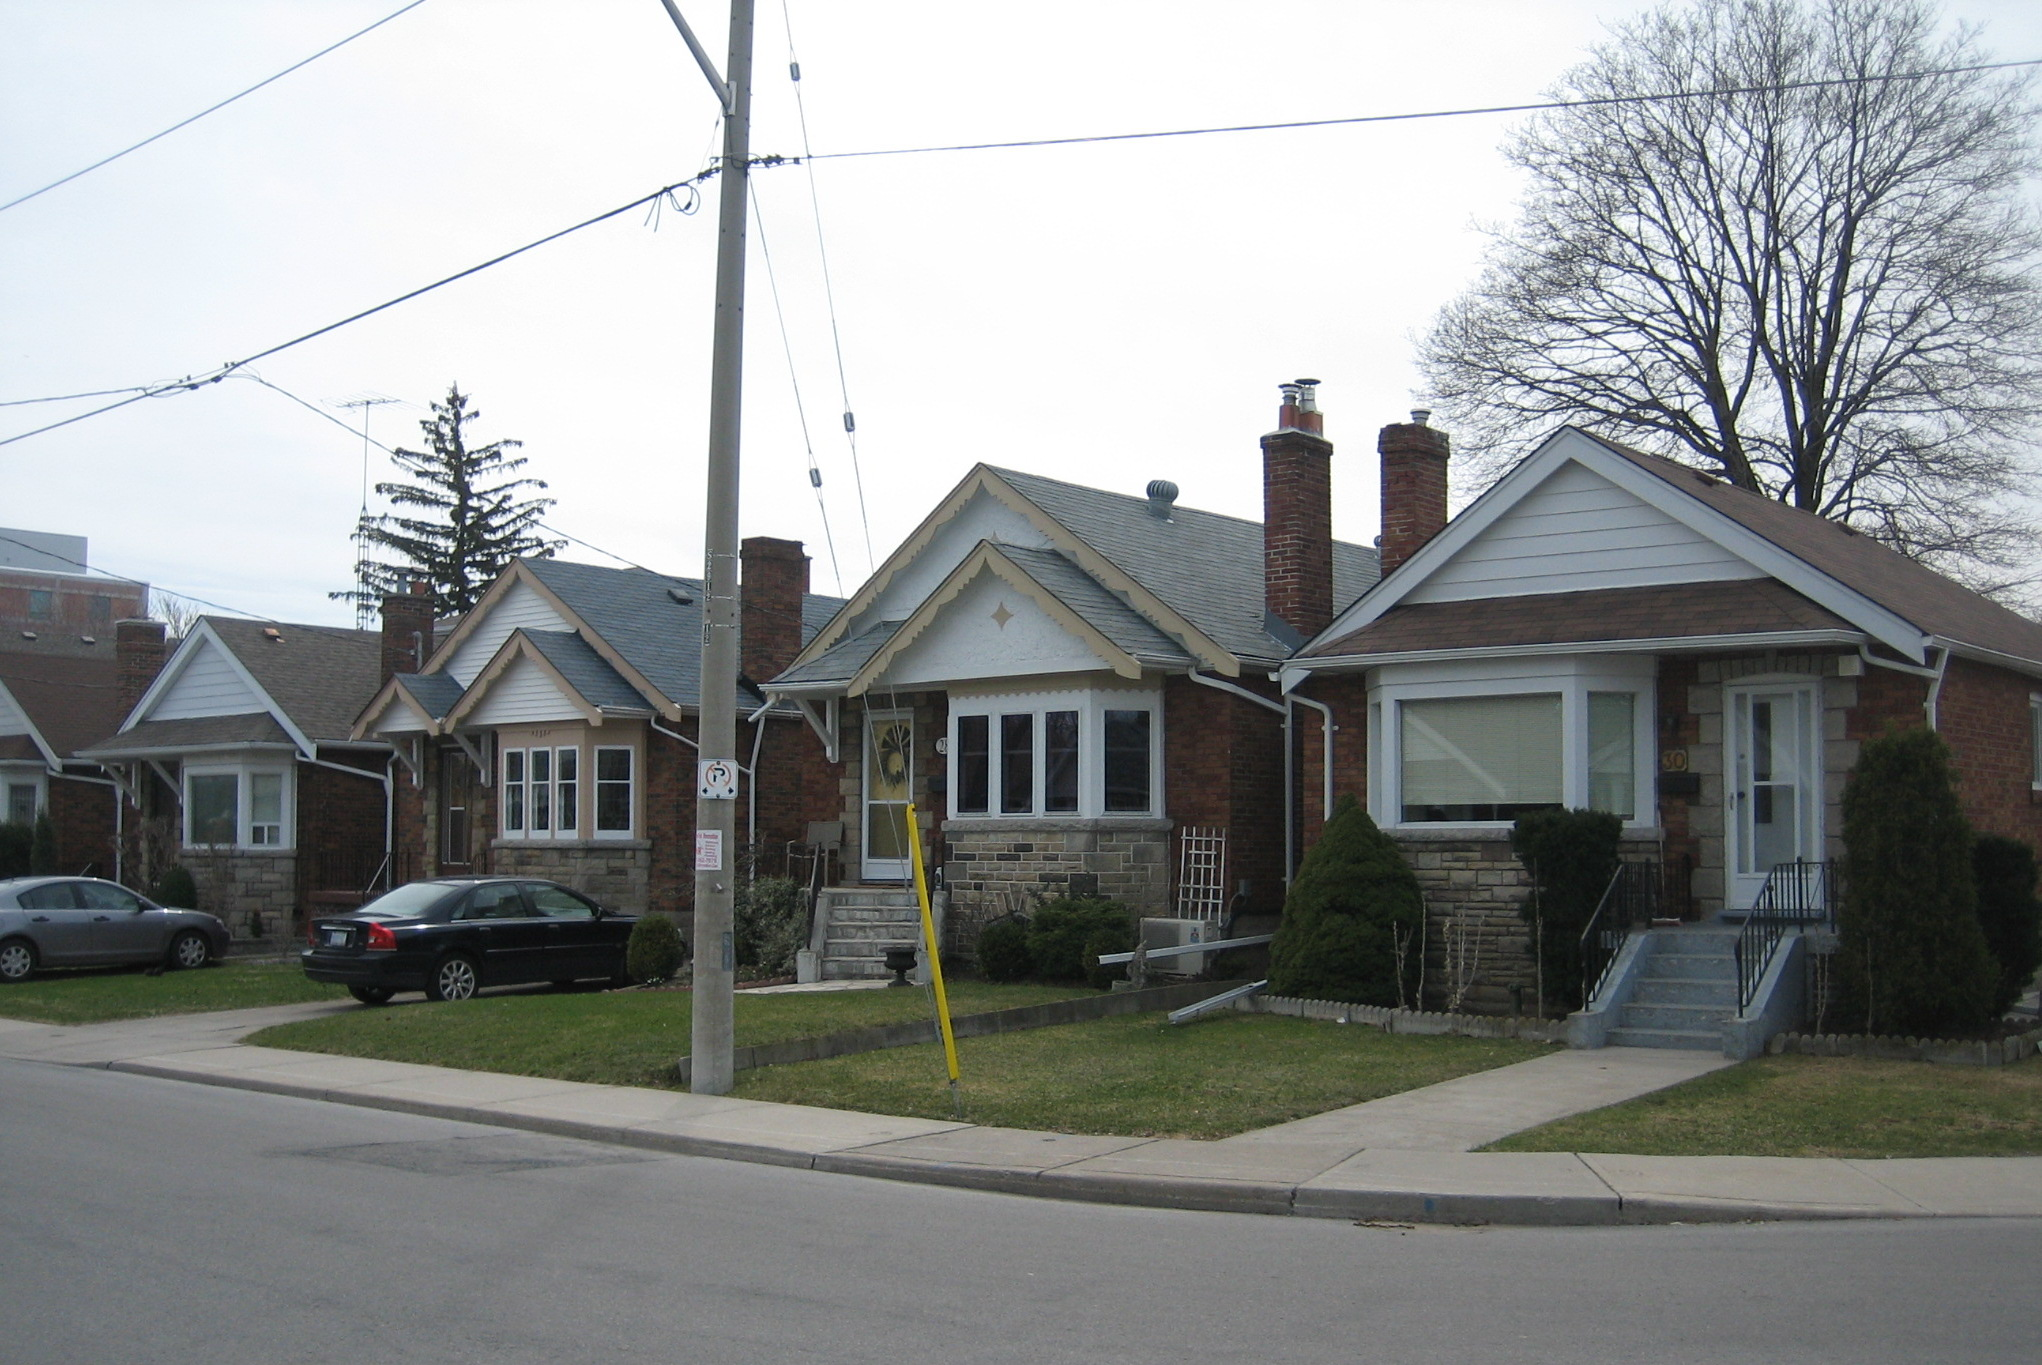 New Listings Homes And Condos For Sale Livonia Mi